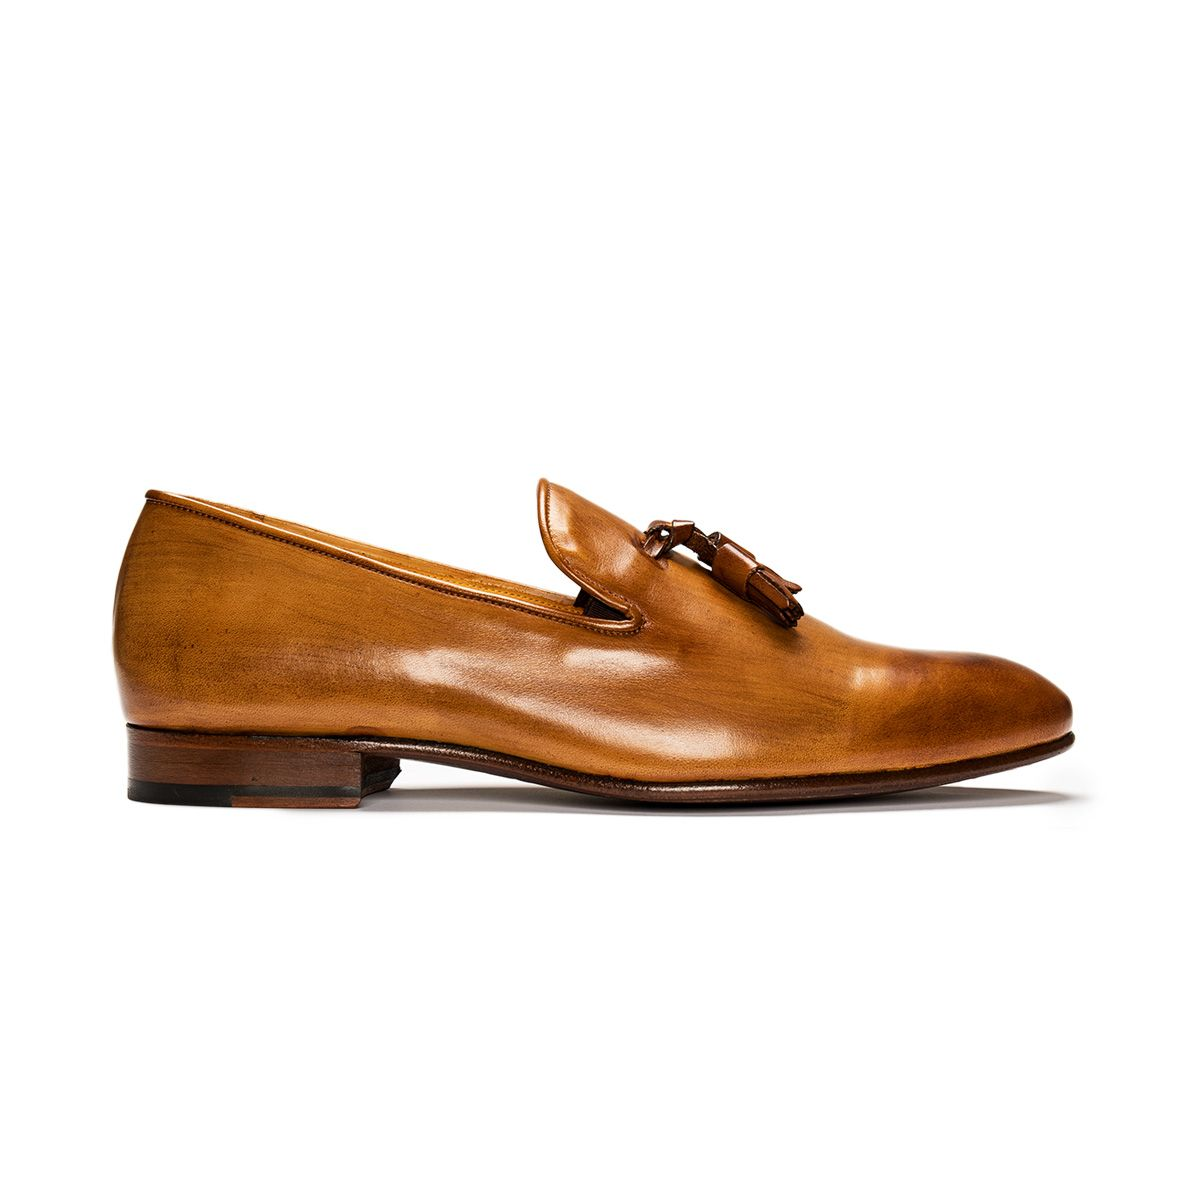 31 by Mark - Patina Loafer; Camel patina; Loafer